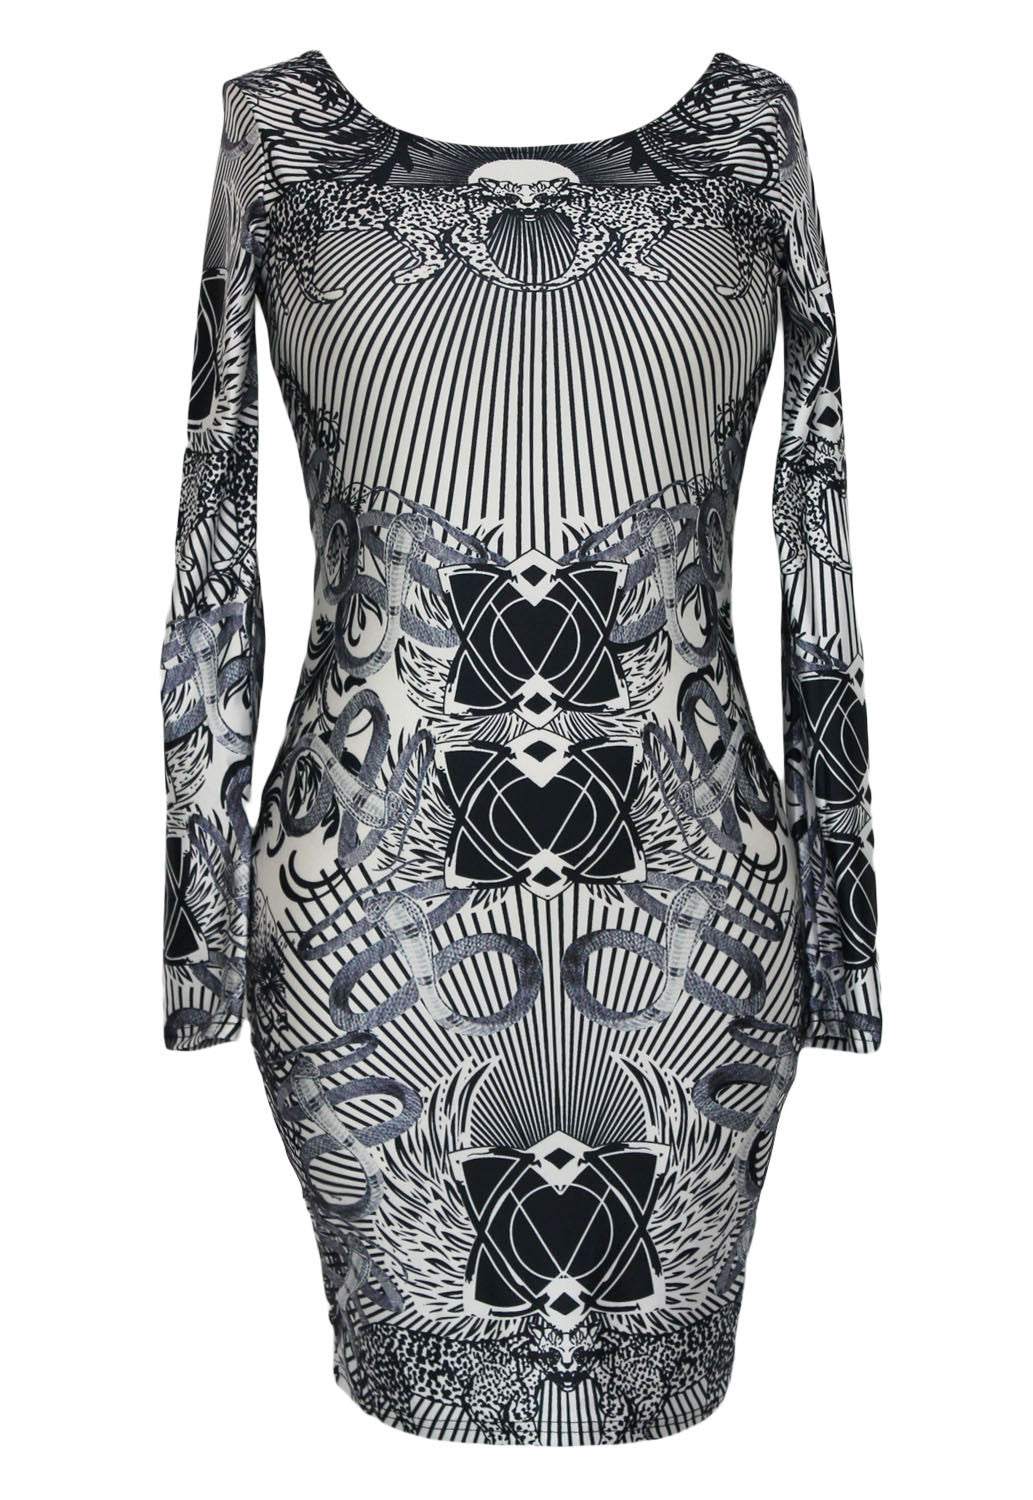 Riri Celebrity Style Novelty Print Vintage Dress 21863 - IBL Fashion - 4